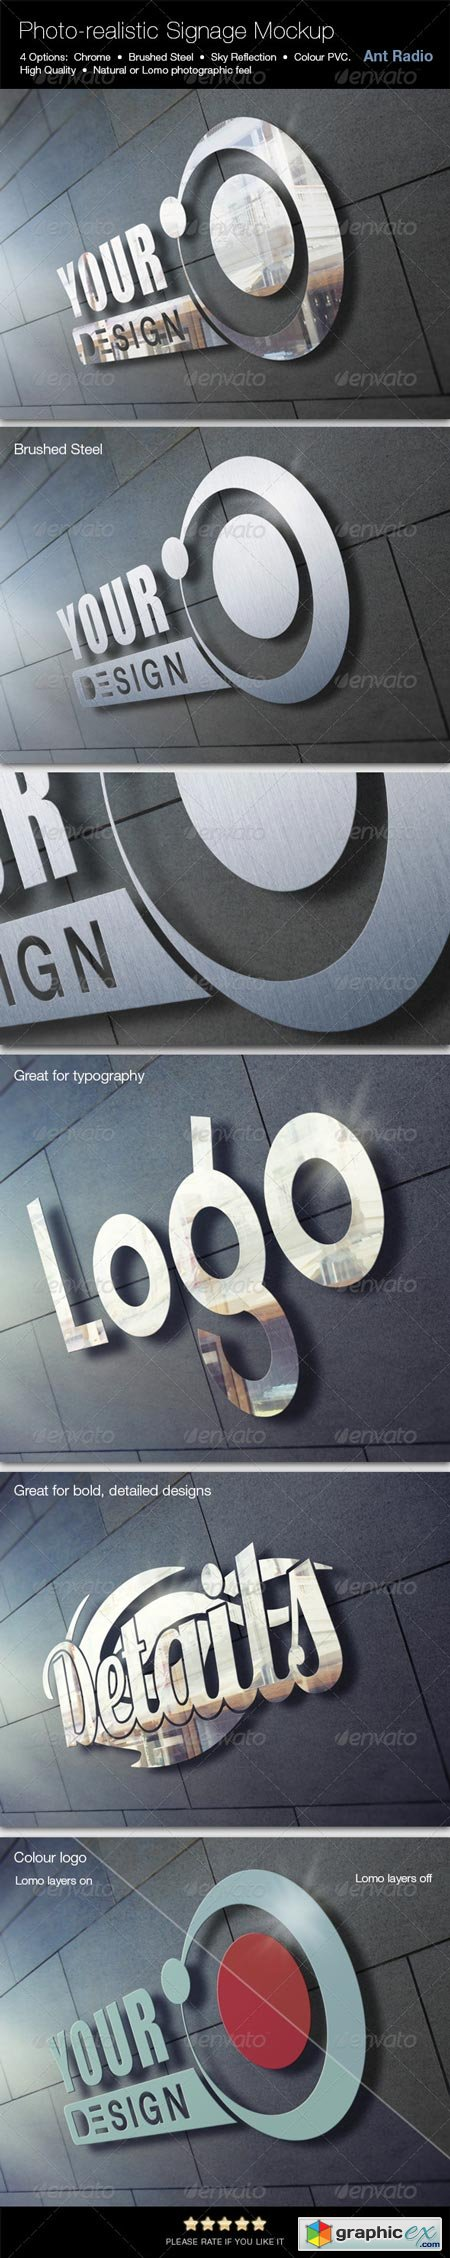 Photorealistic Metal Signage Mock-up 7783448